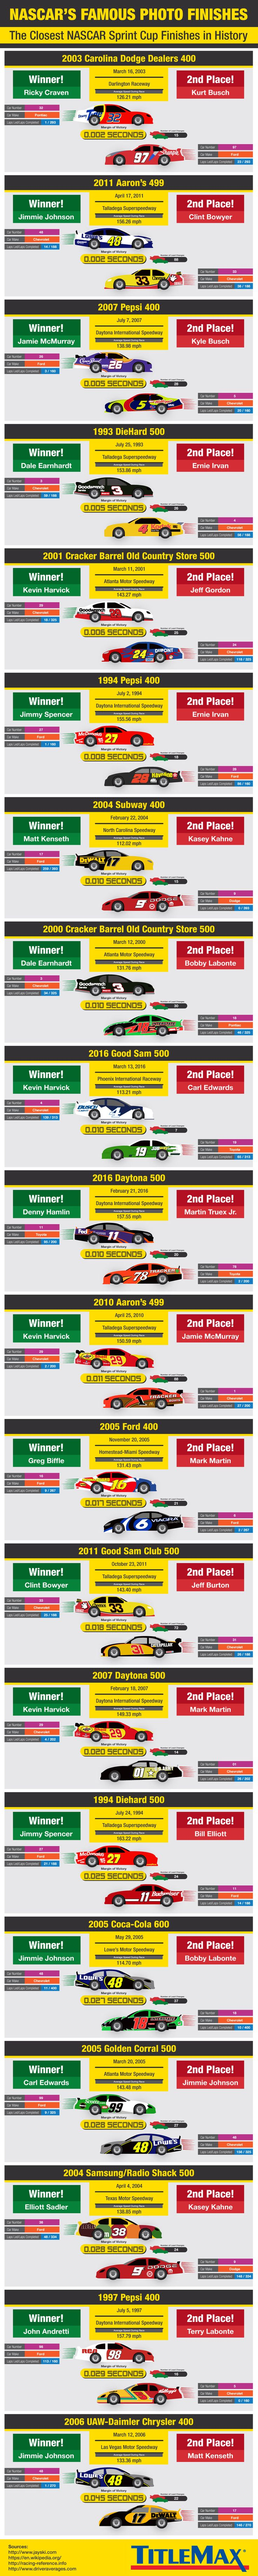 Closest Finishes in NASCAR Sprint Cup Series History - Sports Infographic #race #car